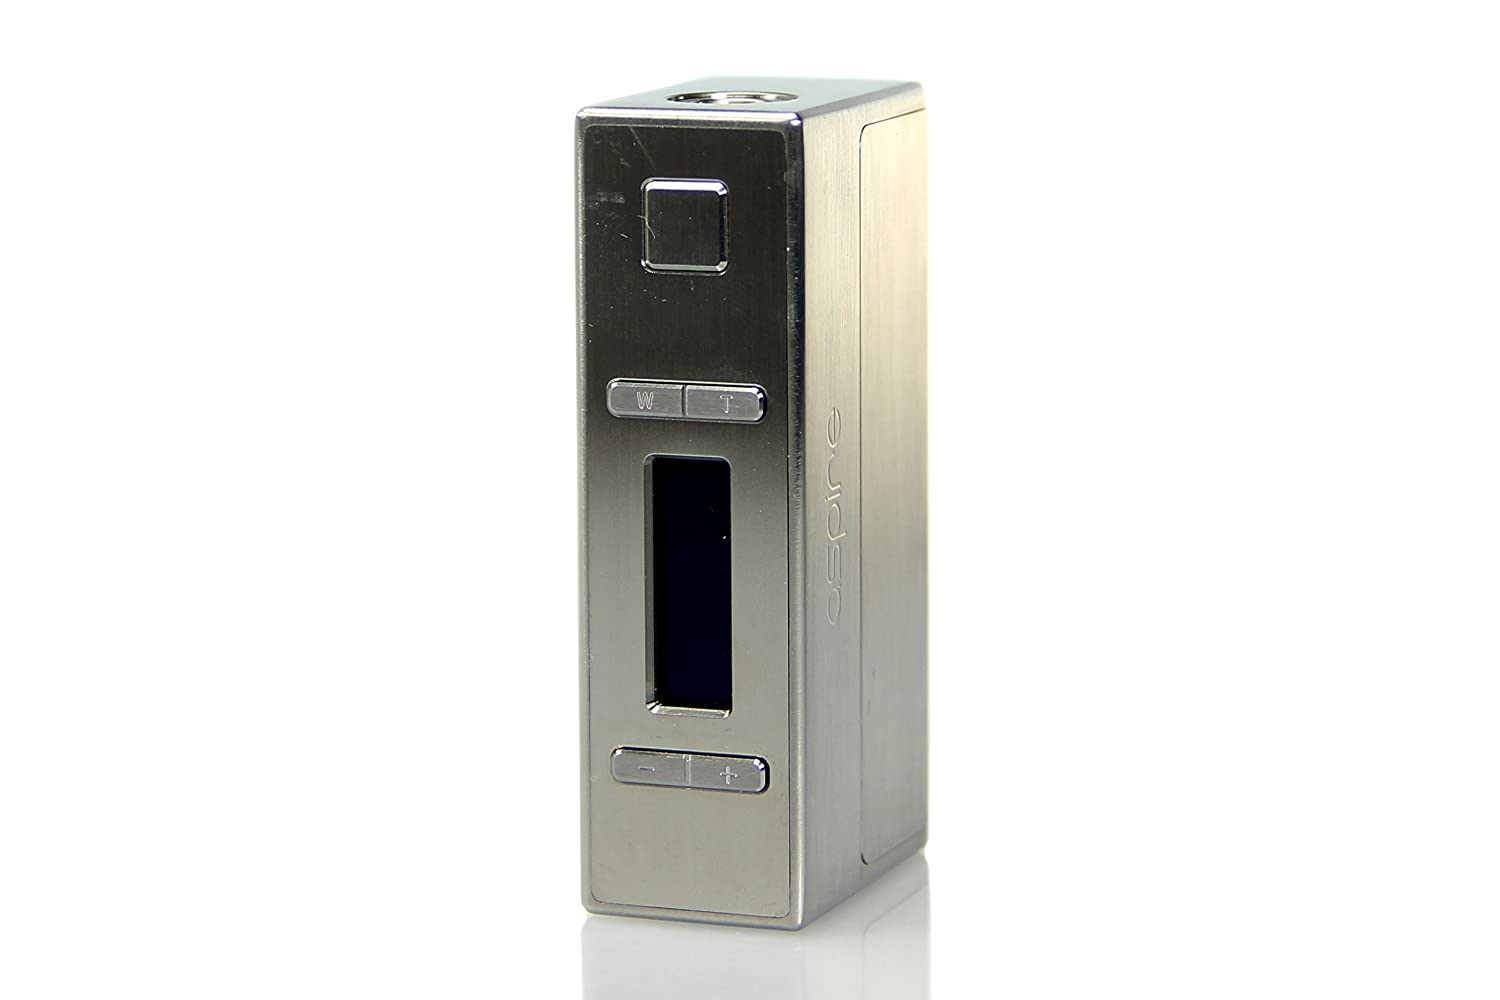 Aspire NX75-S Stainless Steel MOD High End CNC Edition